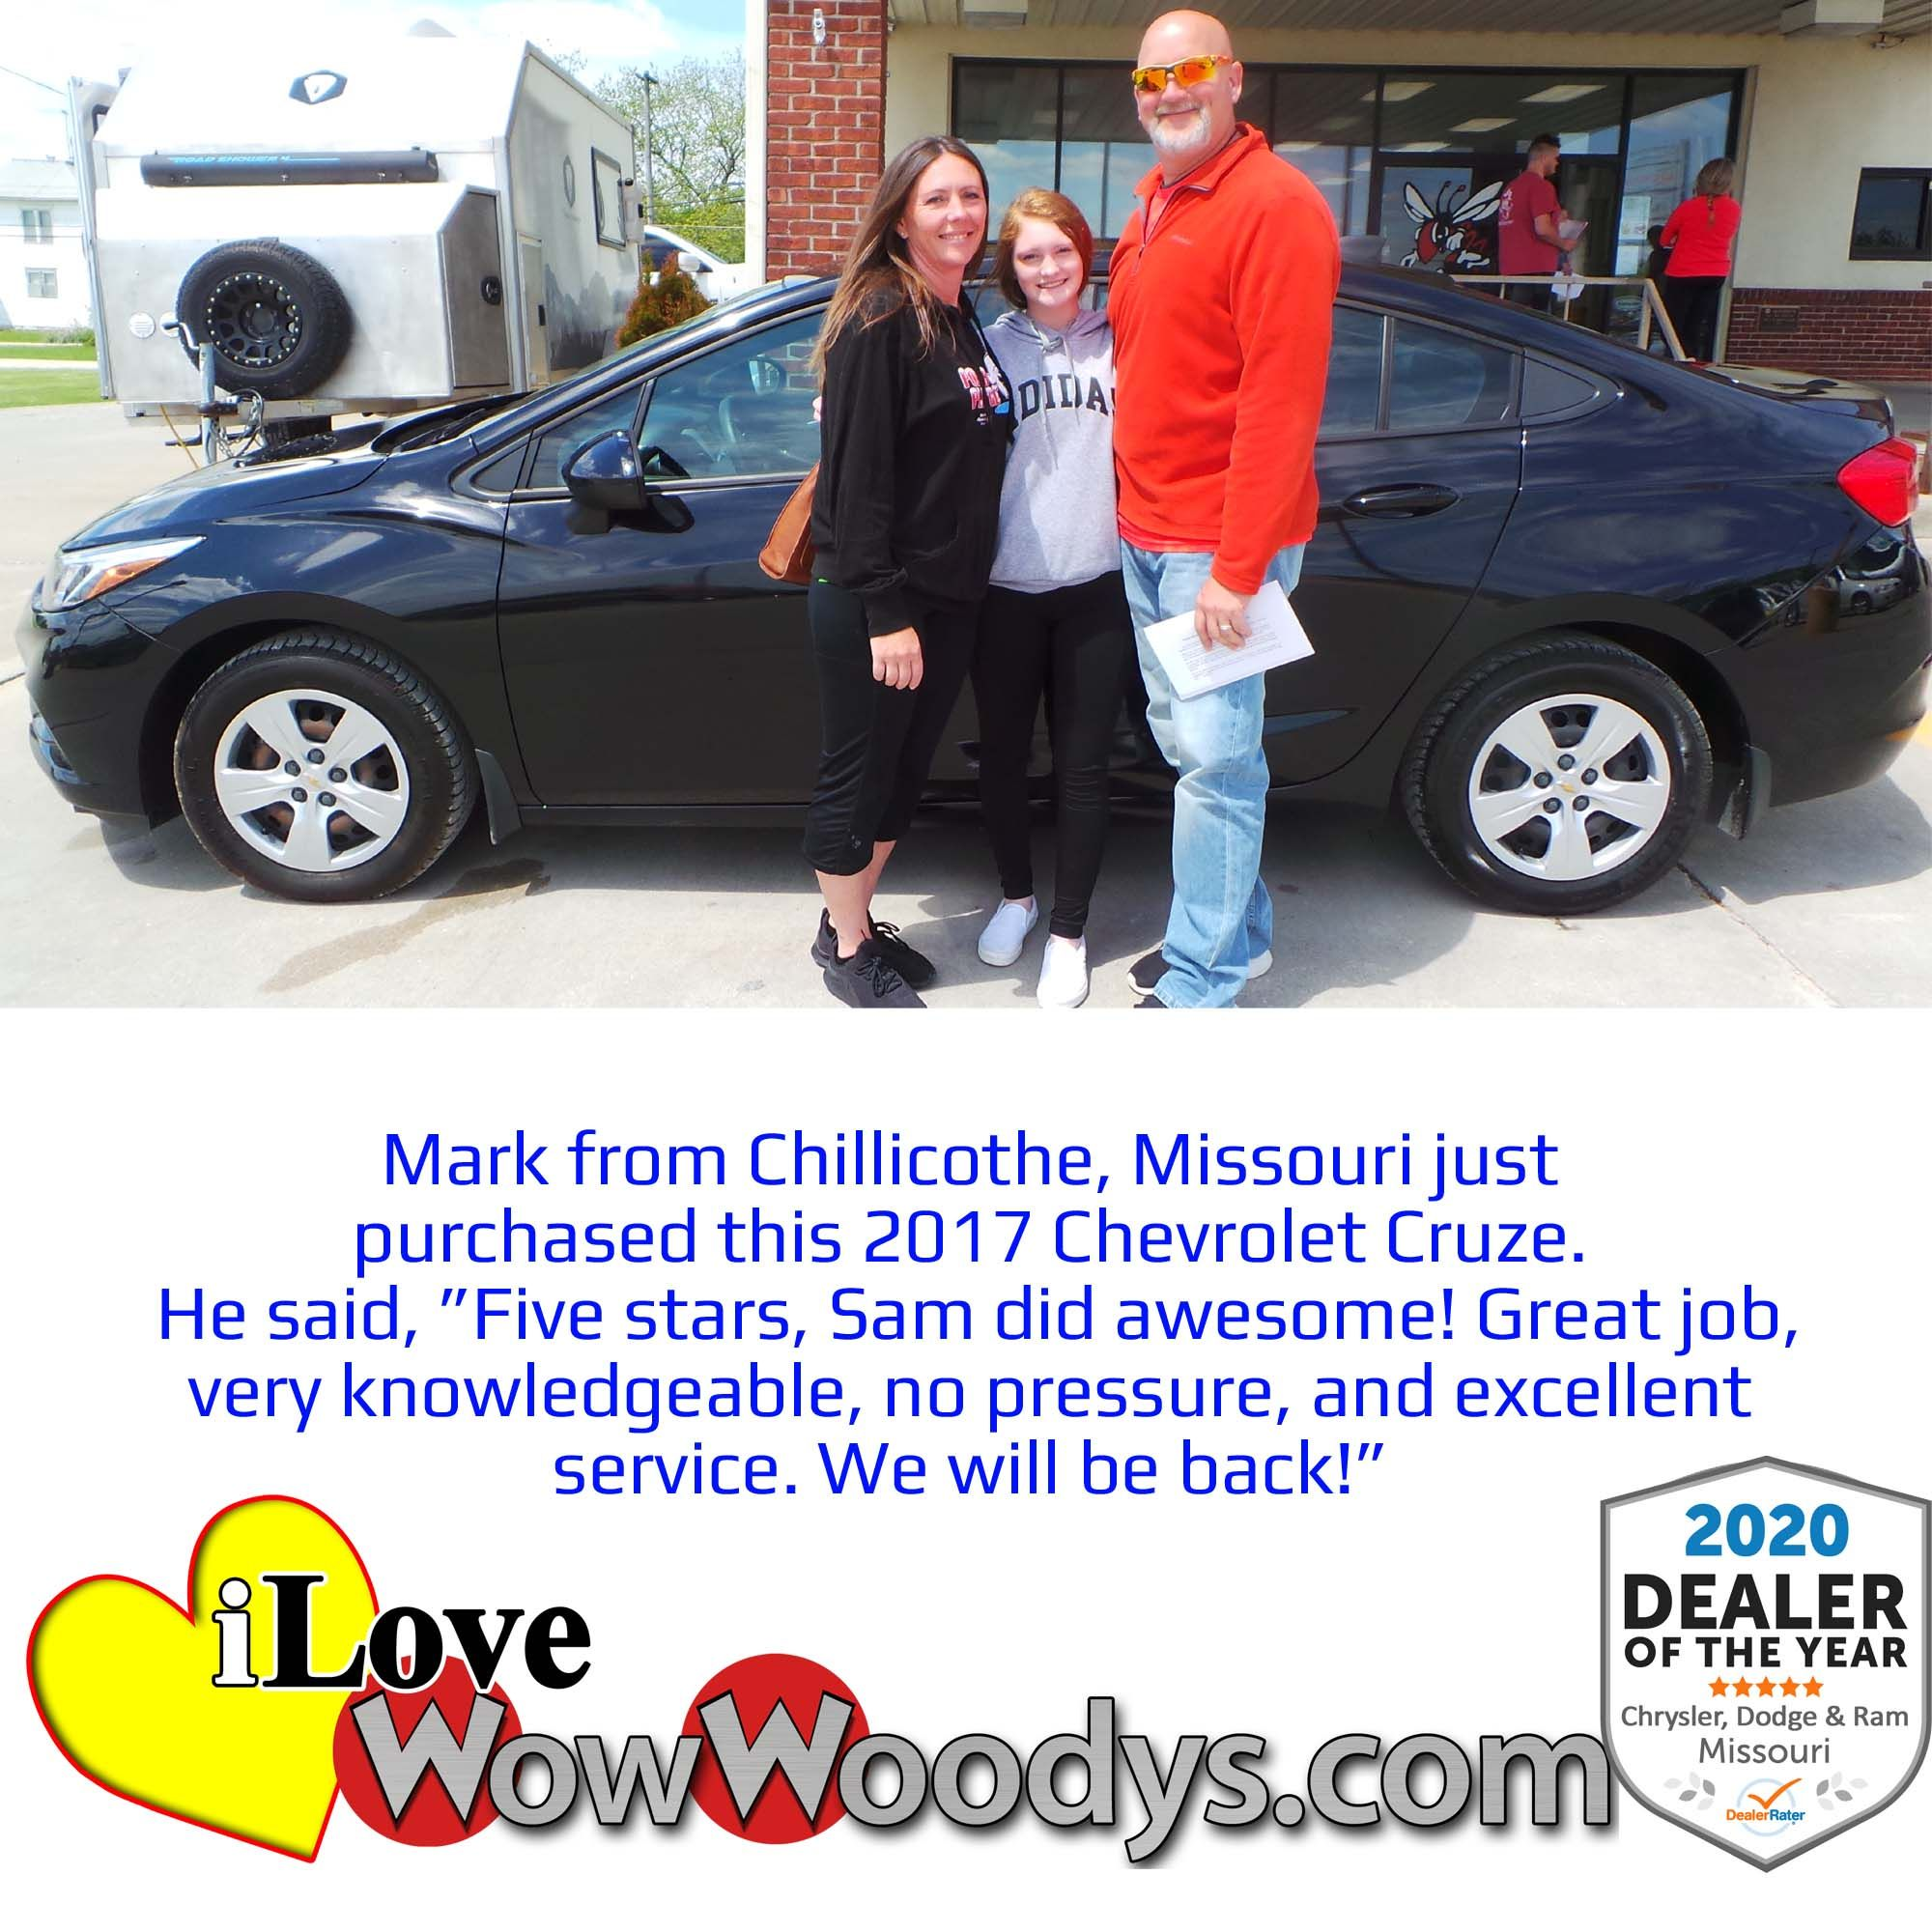 New Used Cars For Sale In Chillicothe Near Kansas City Mo Woody S Automotive Group In 2020 Chevrolet Cruze Automotive Group Cars For Sale Used